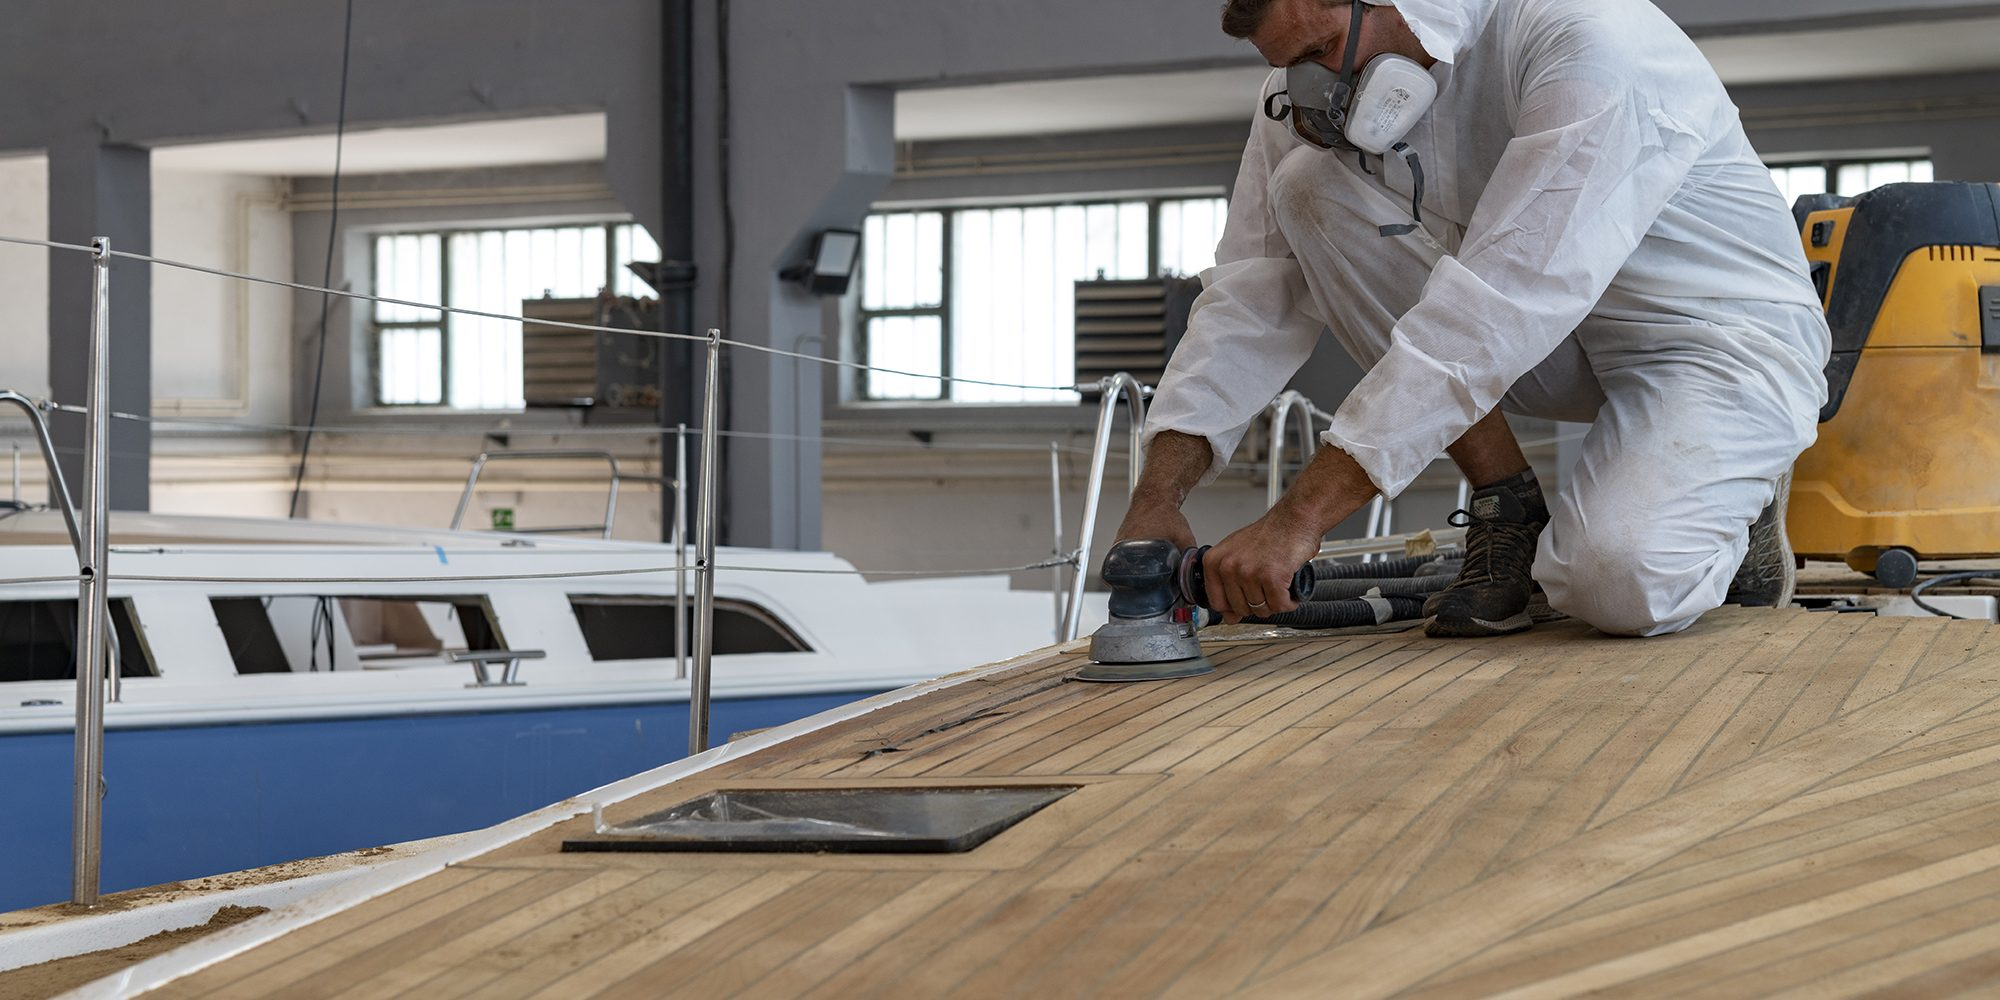 kufner yachts cantiere operaio al lavoro